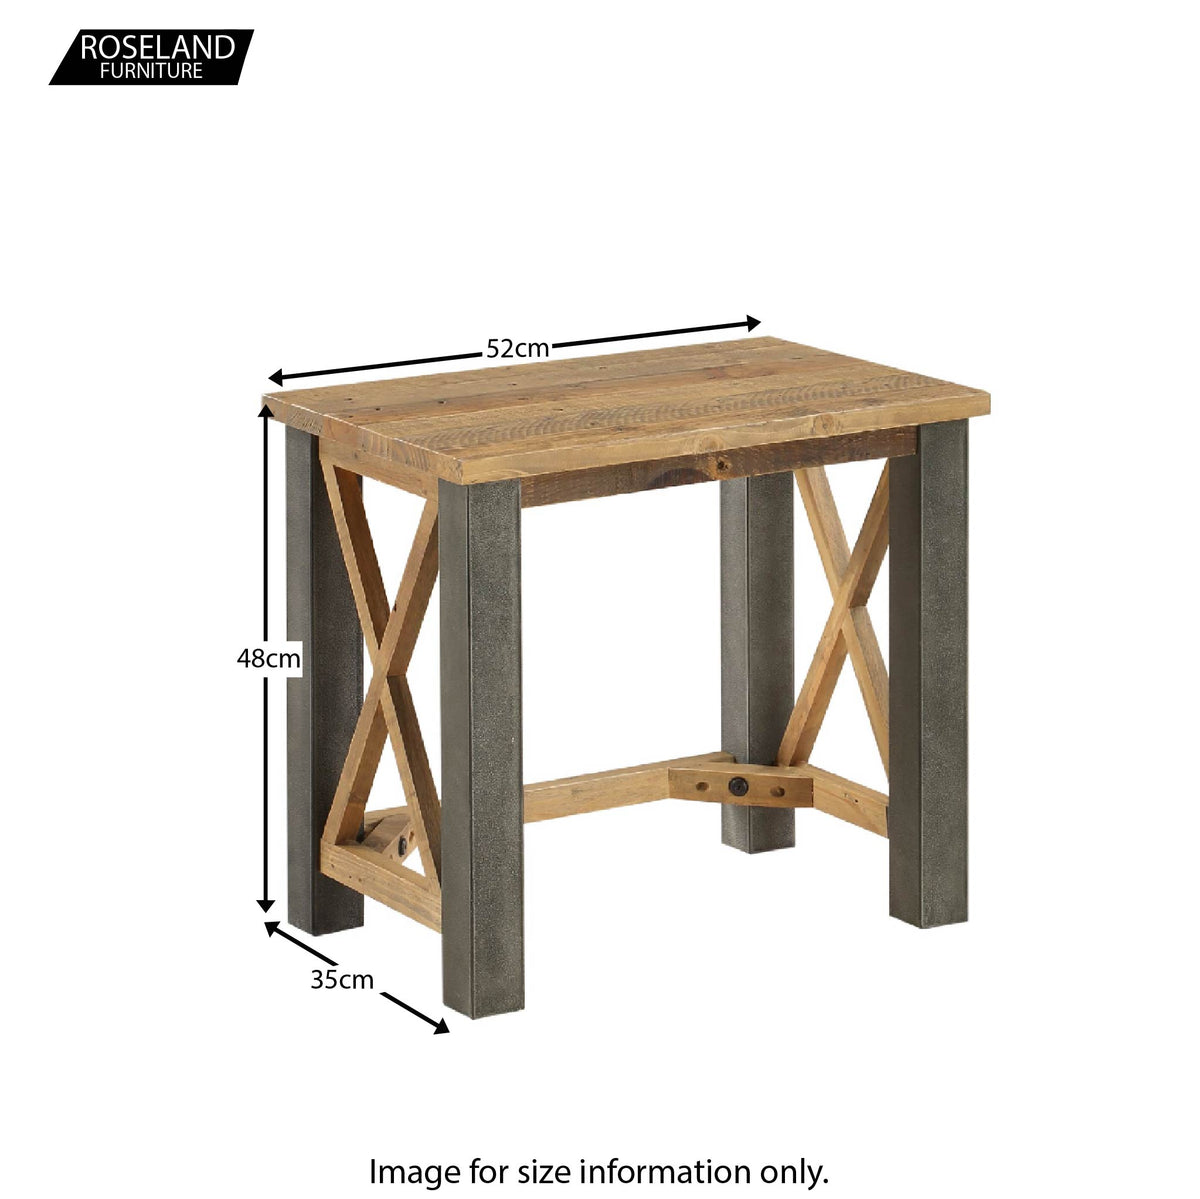 Dimensions for Urban Elegance Reclaimed Wood Side Lamp Table 48 x 52 x 35 cm